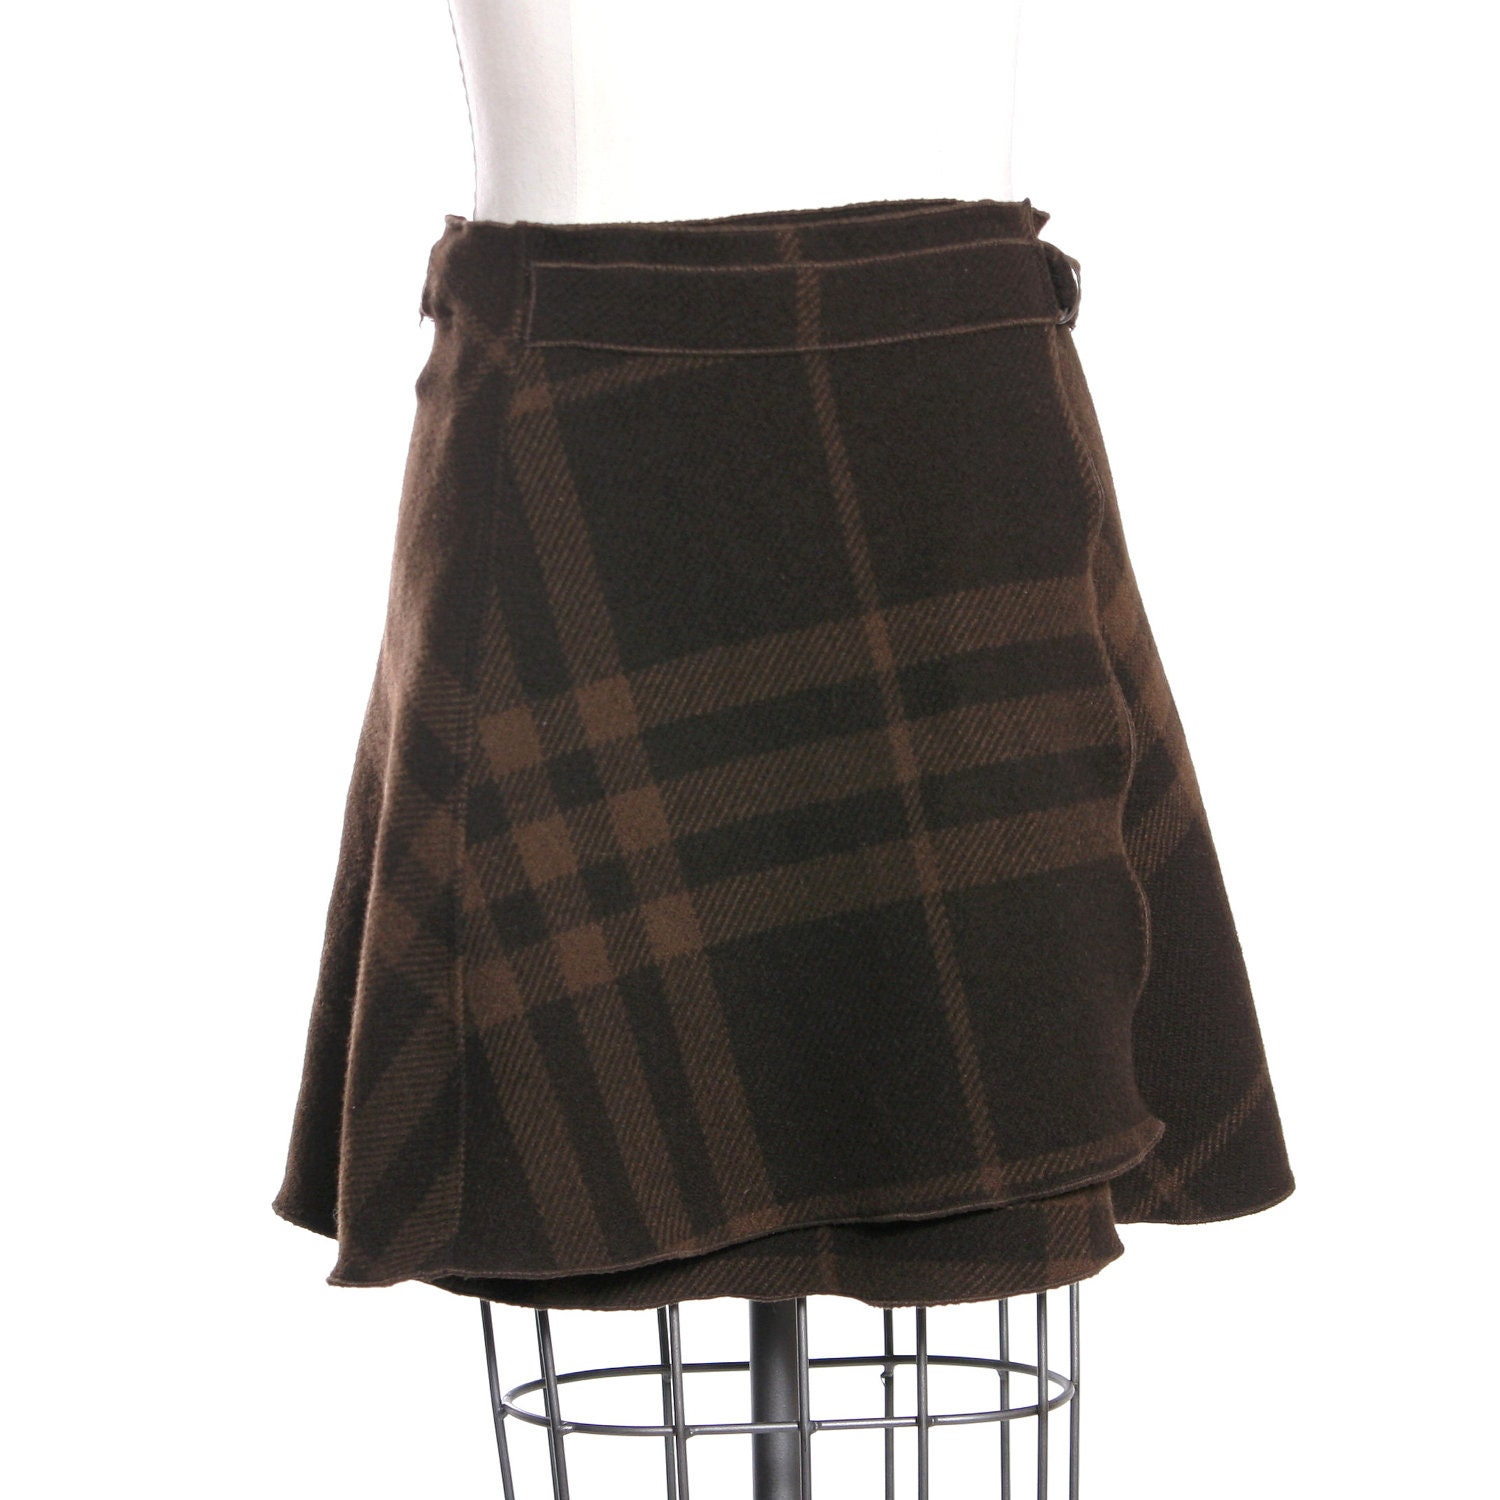 Find great deals on eBay for brown plaid skirt. Shop with confidence.